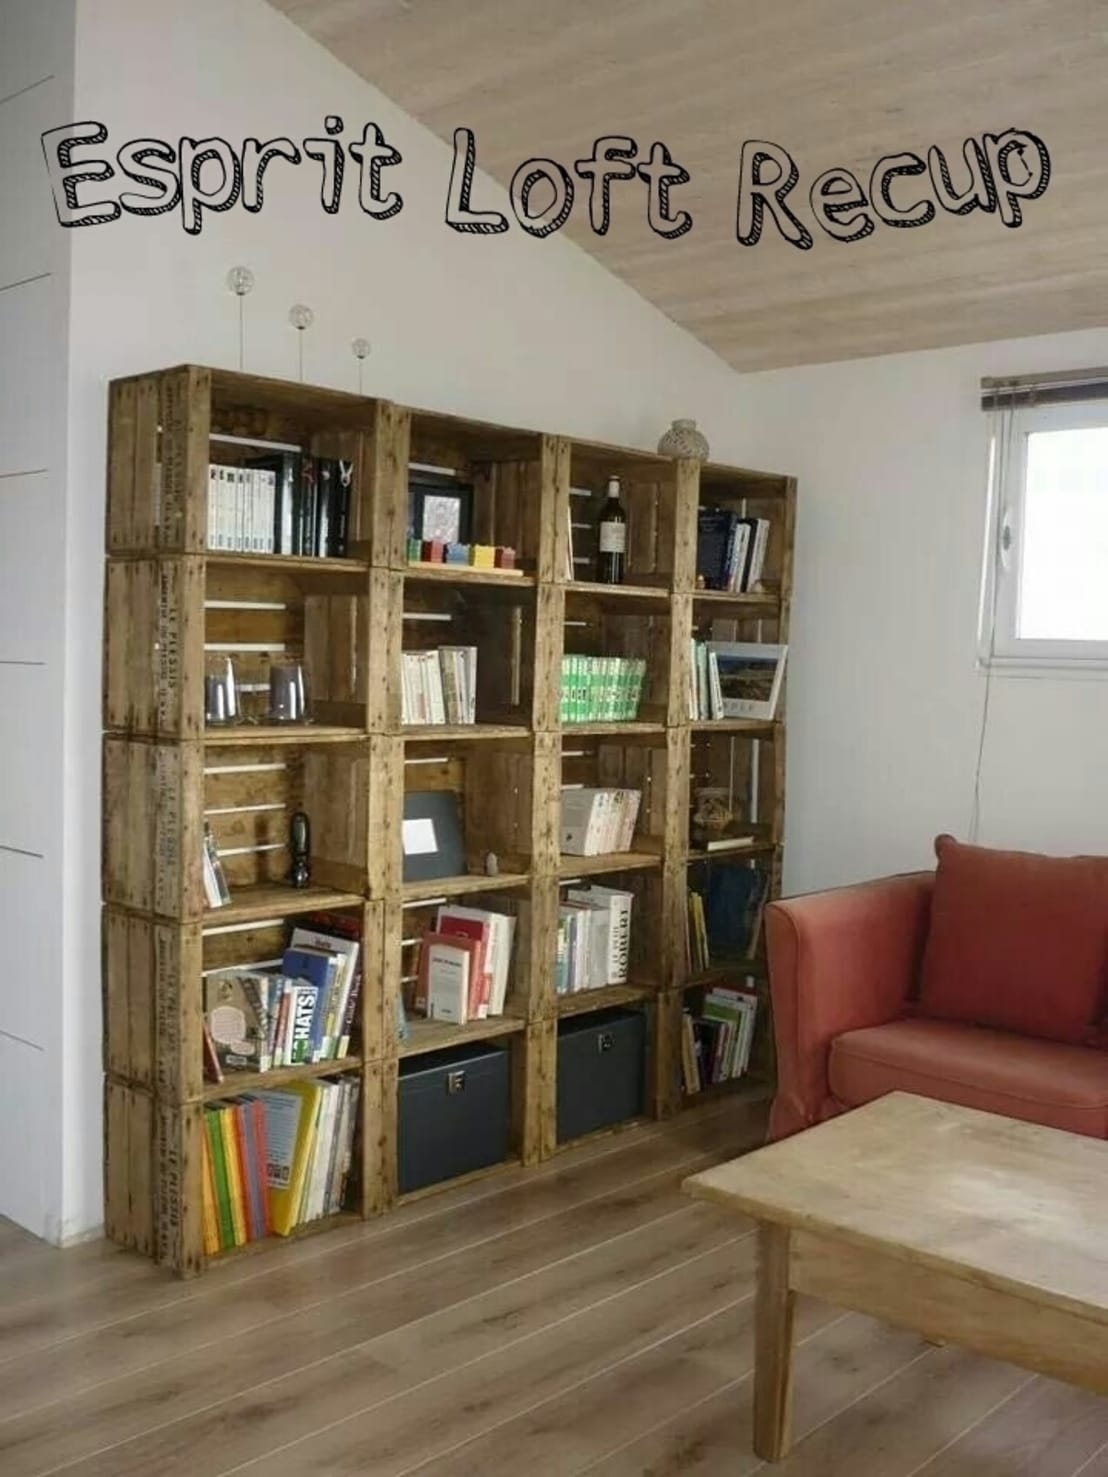 bibliotheques caisse a pomme de esprit loft recup homify. Black Bedroom Furniture Sets. Home Design Ideas